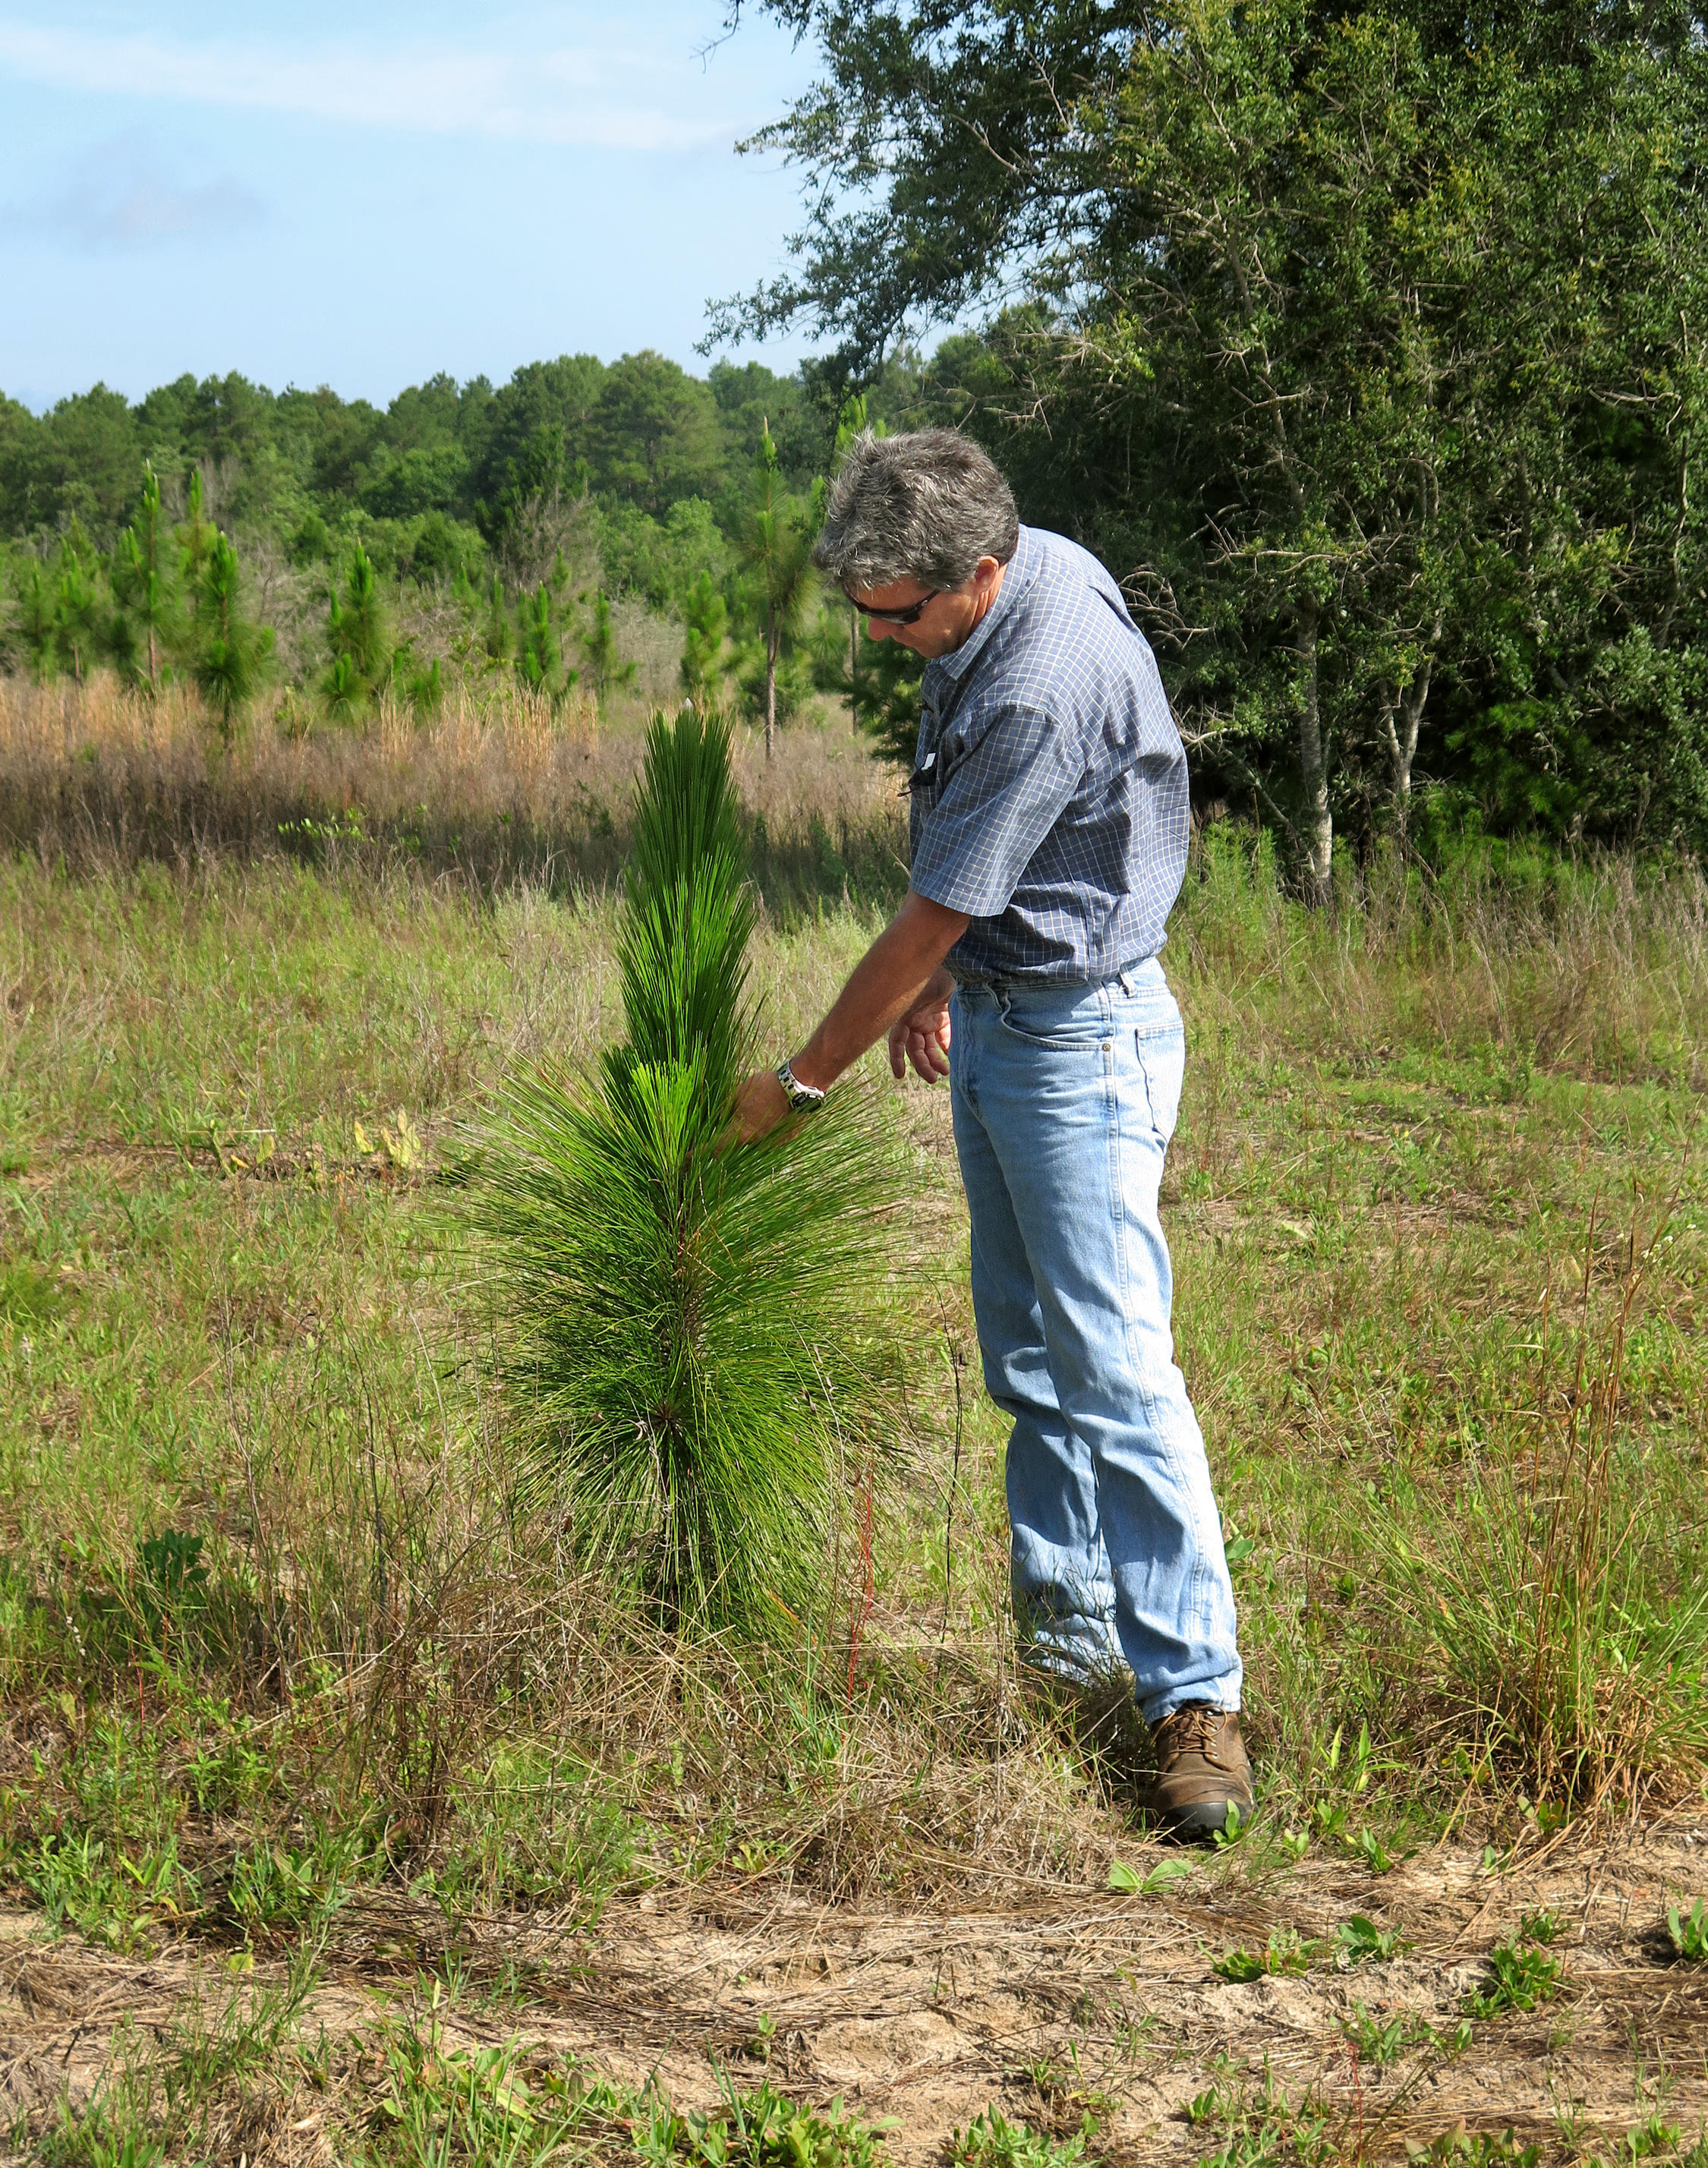 Gambler-Turned-Conservationist Devotes Fortune To Florida Nature